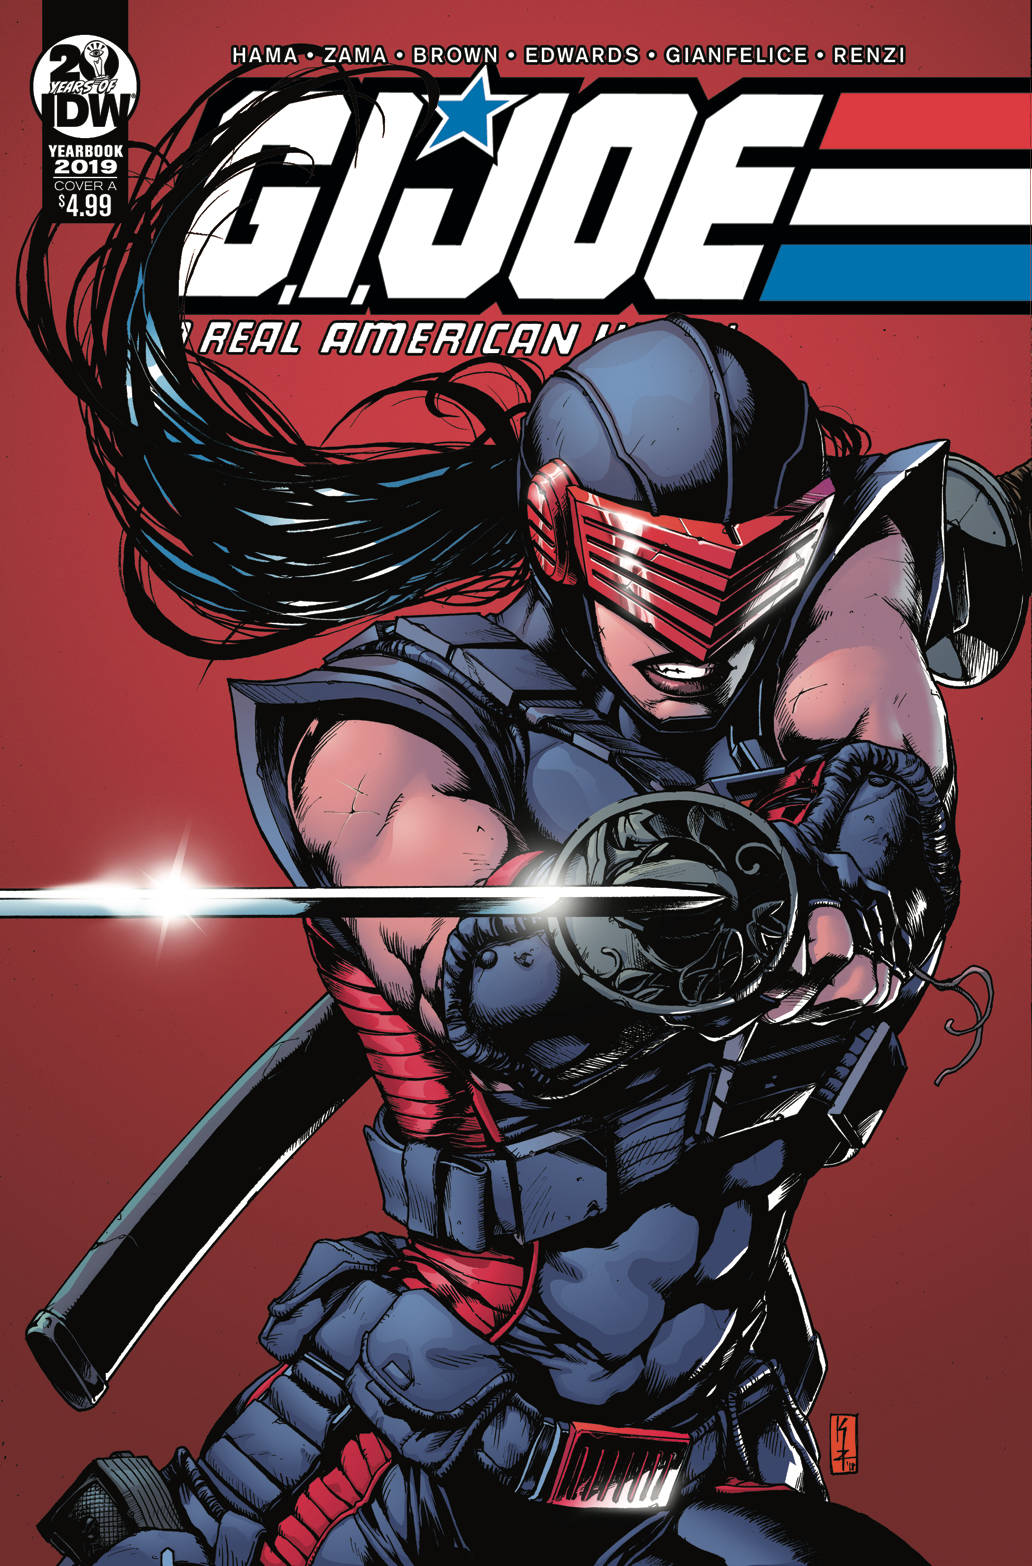 GI JOE A REAL AMERICAN HERO YEARBOOK CVR A ZAMA.jpg